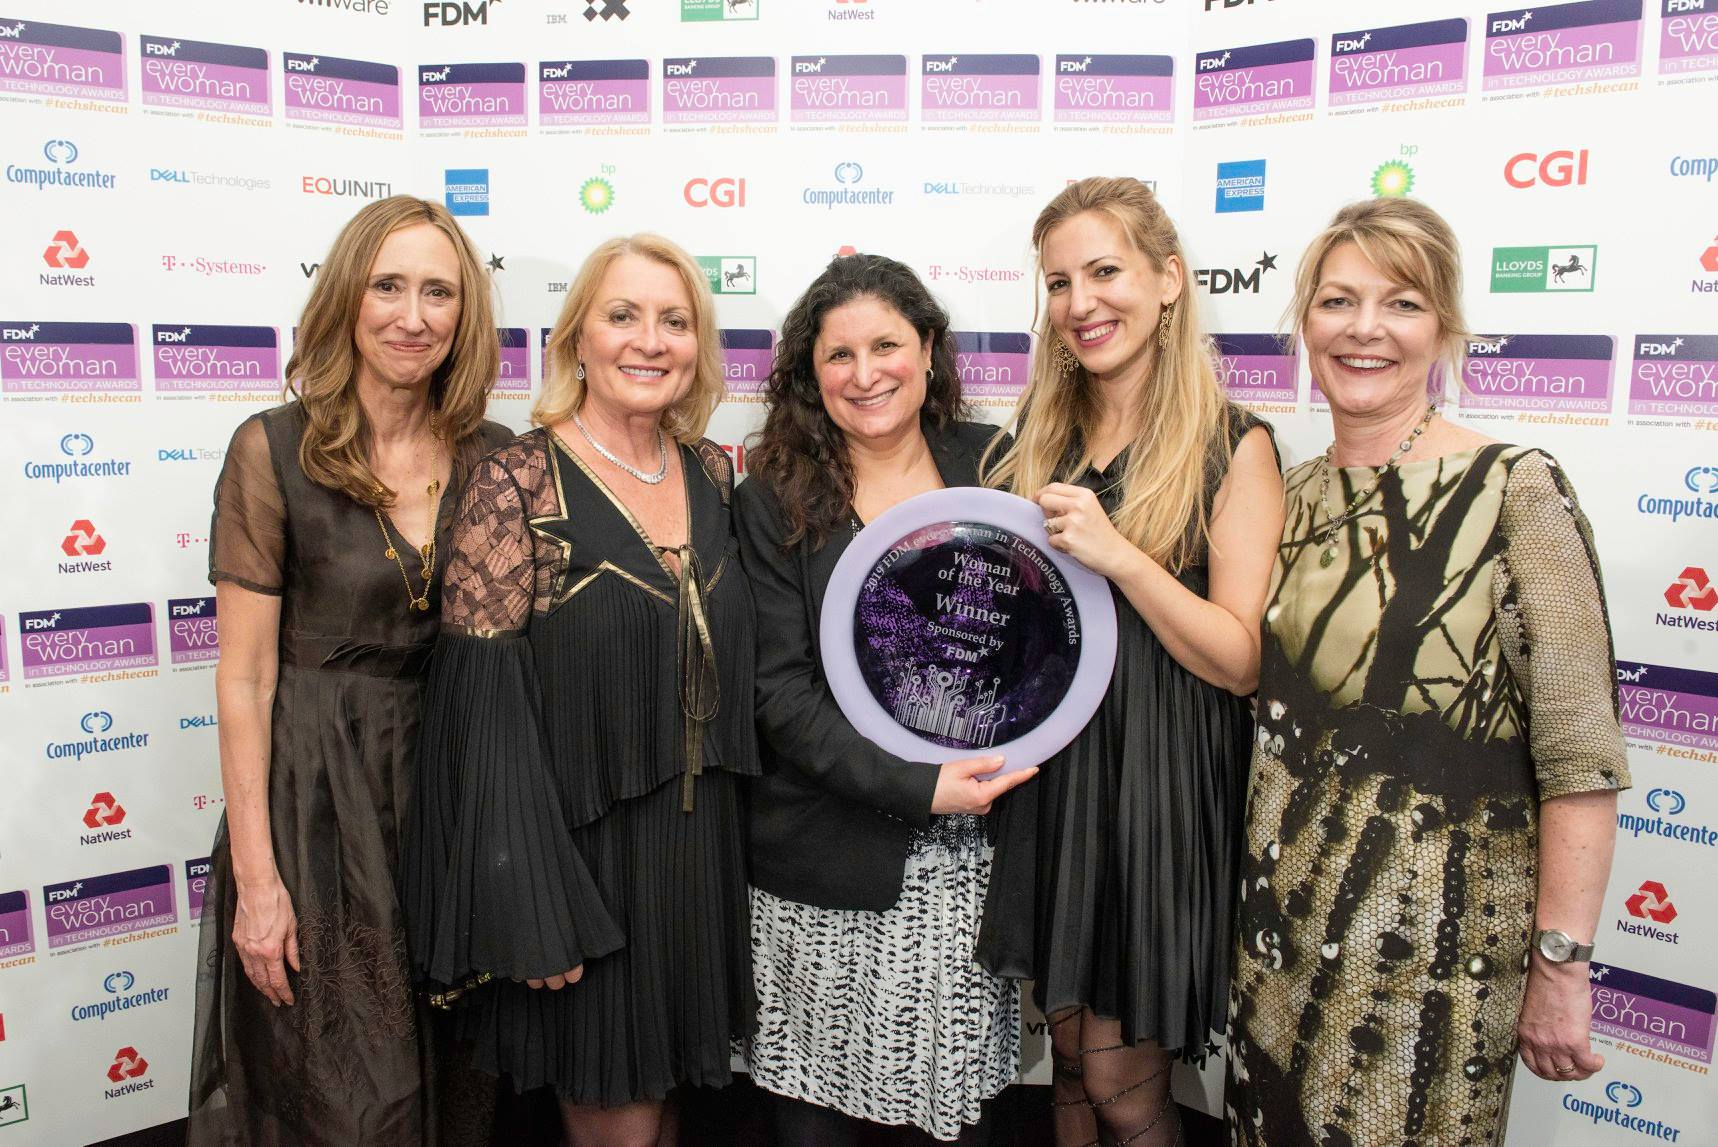 A group of attendees at the 2019 everywoman awards 2019, including FDM COO Sheila Flavell.